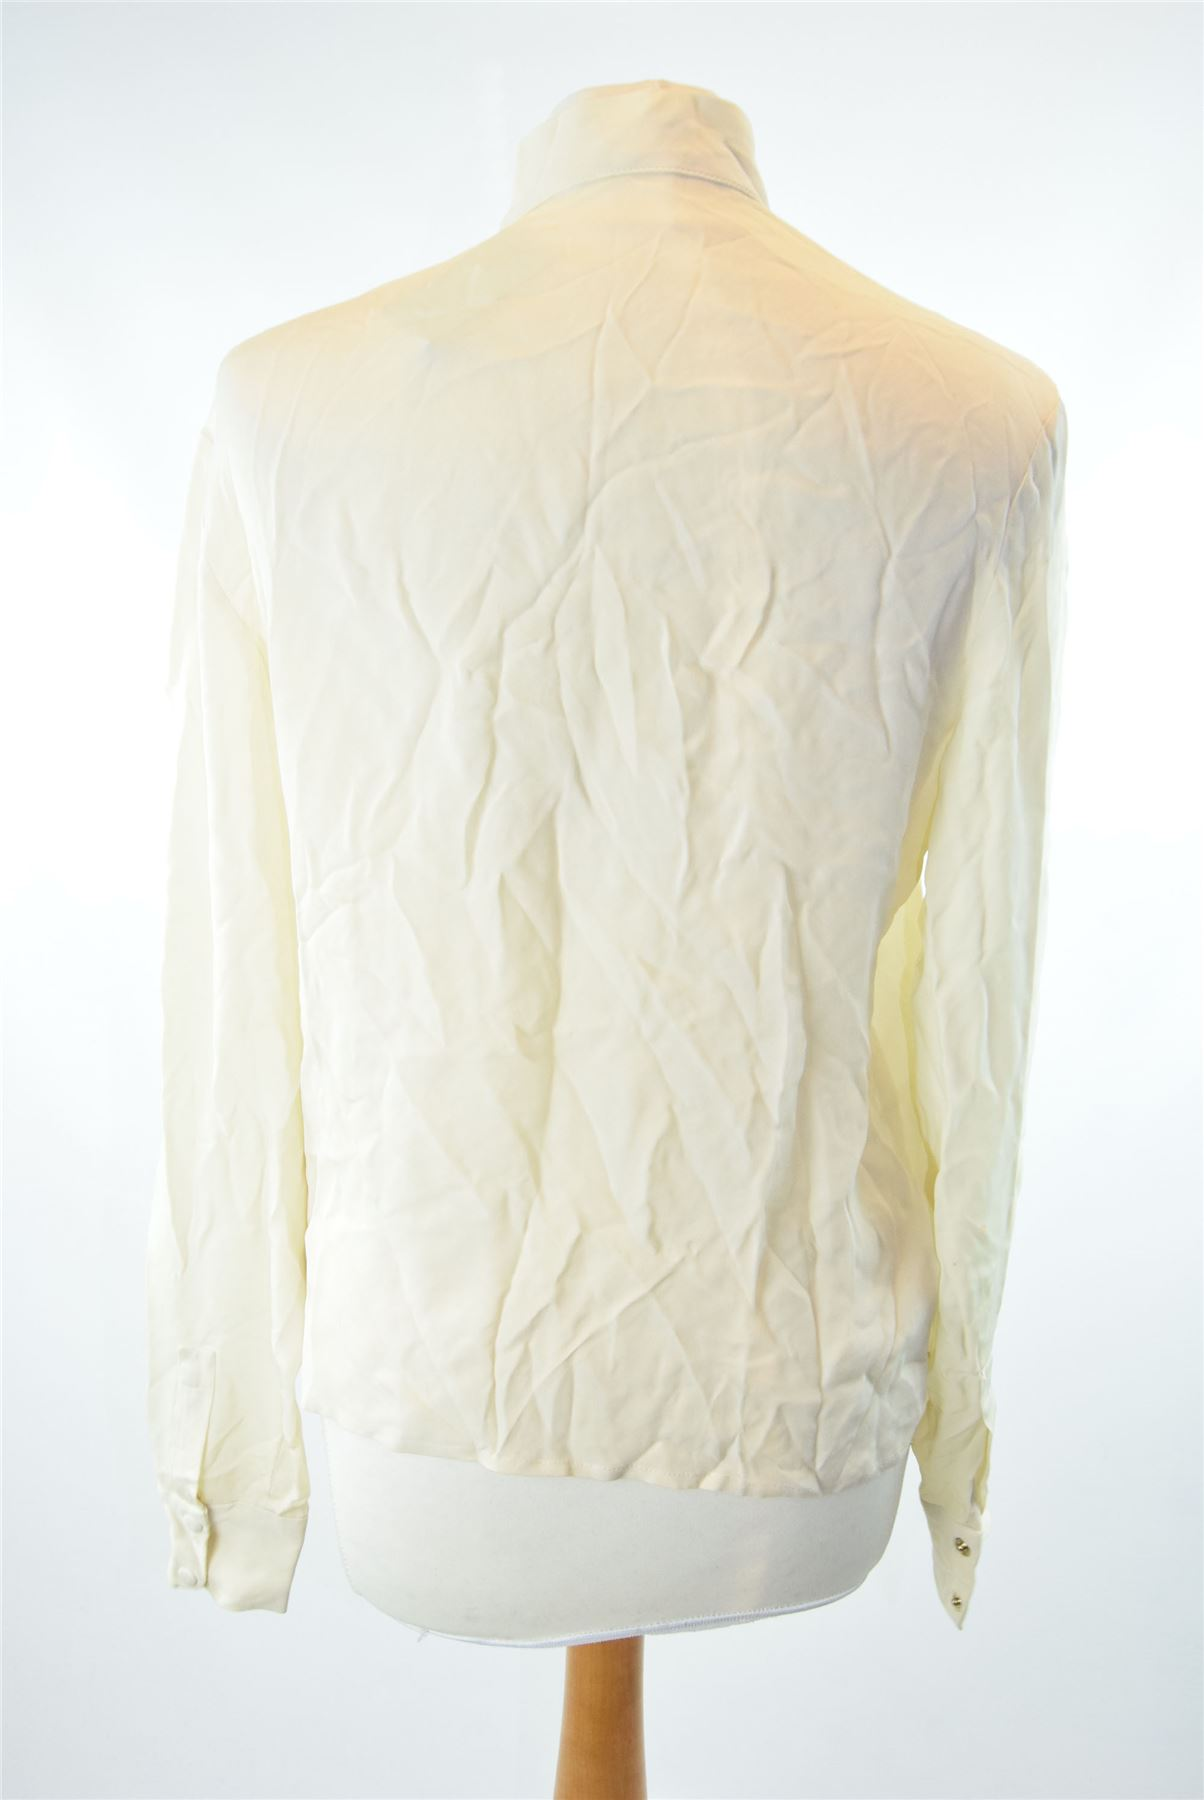 4533bb61d03a3 Details about CHLOE Cream 100% Silk Blouse With Ruffle Detail